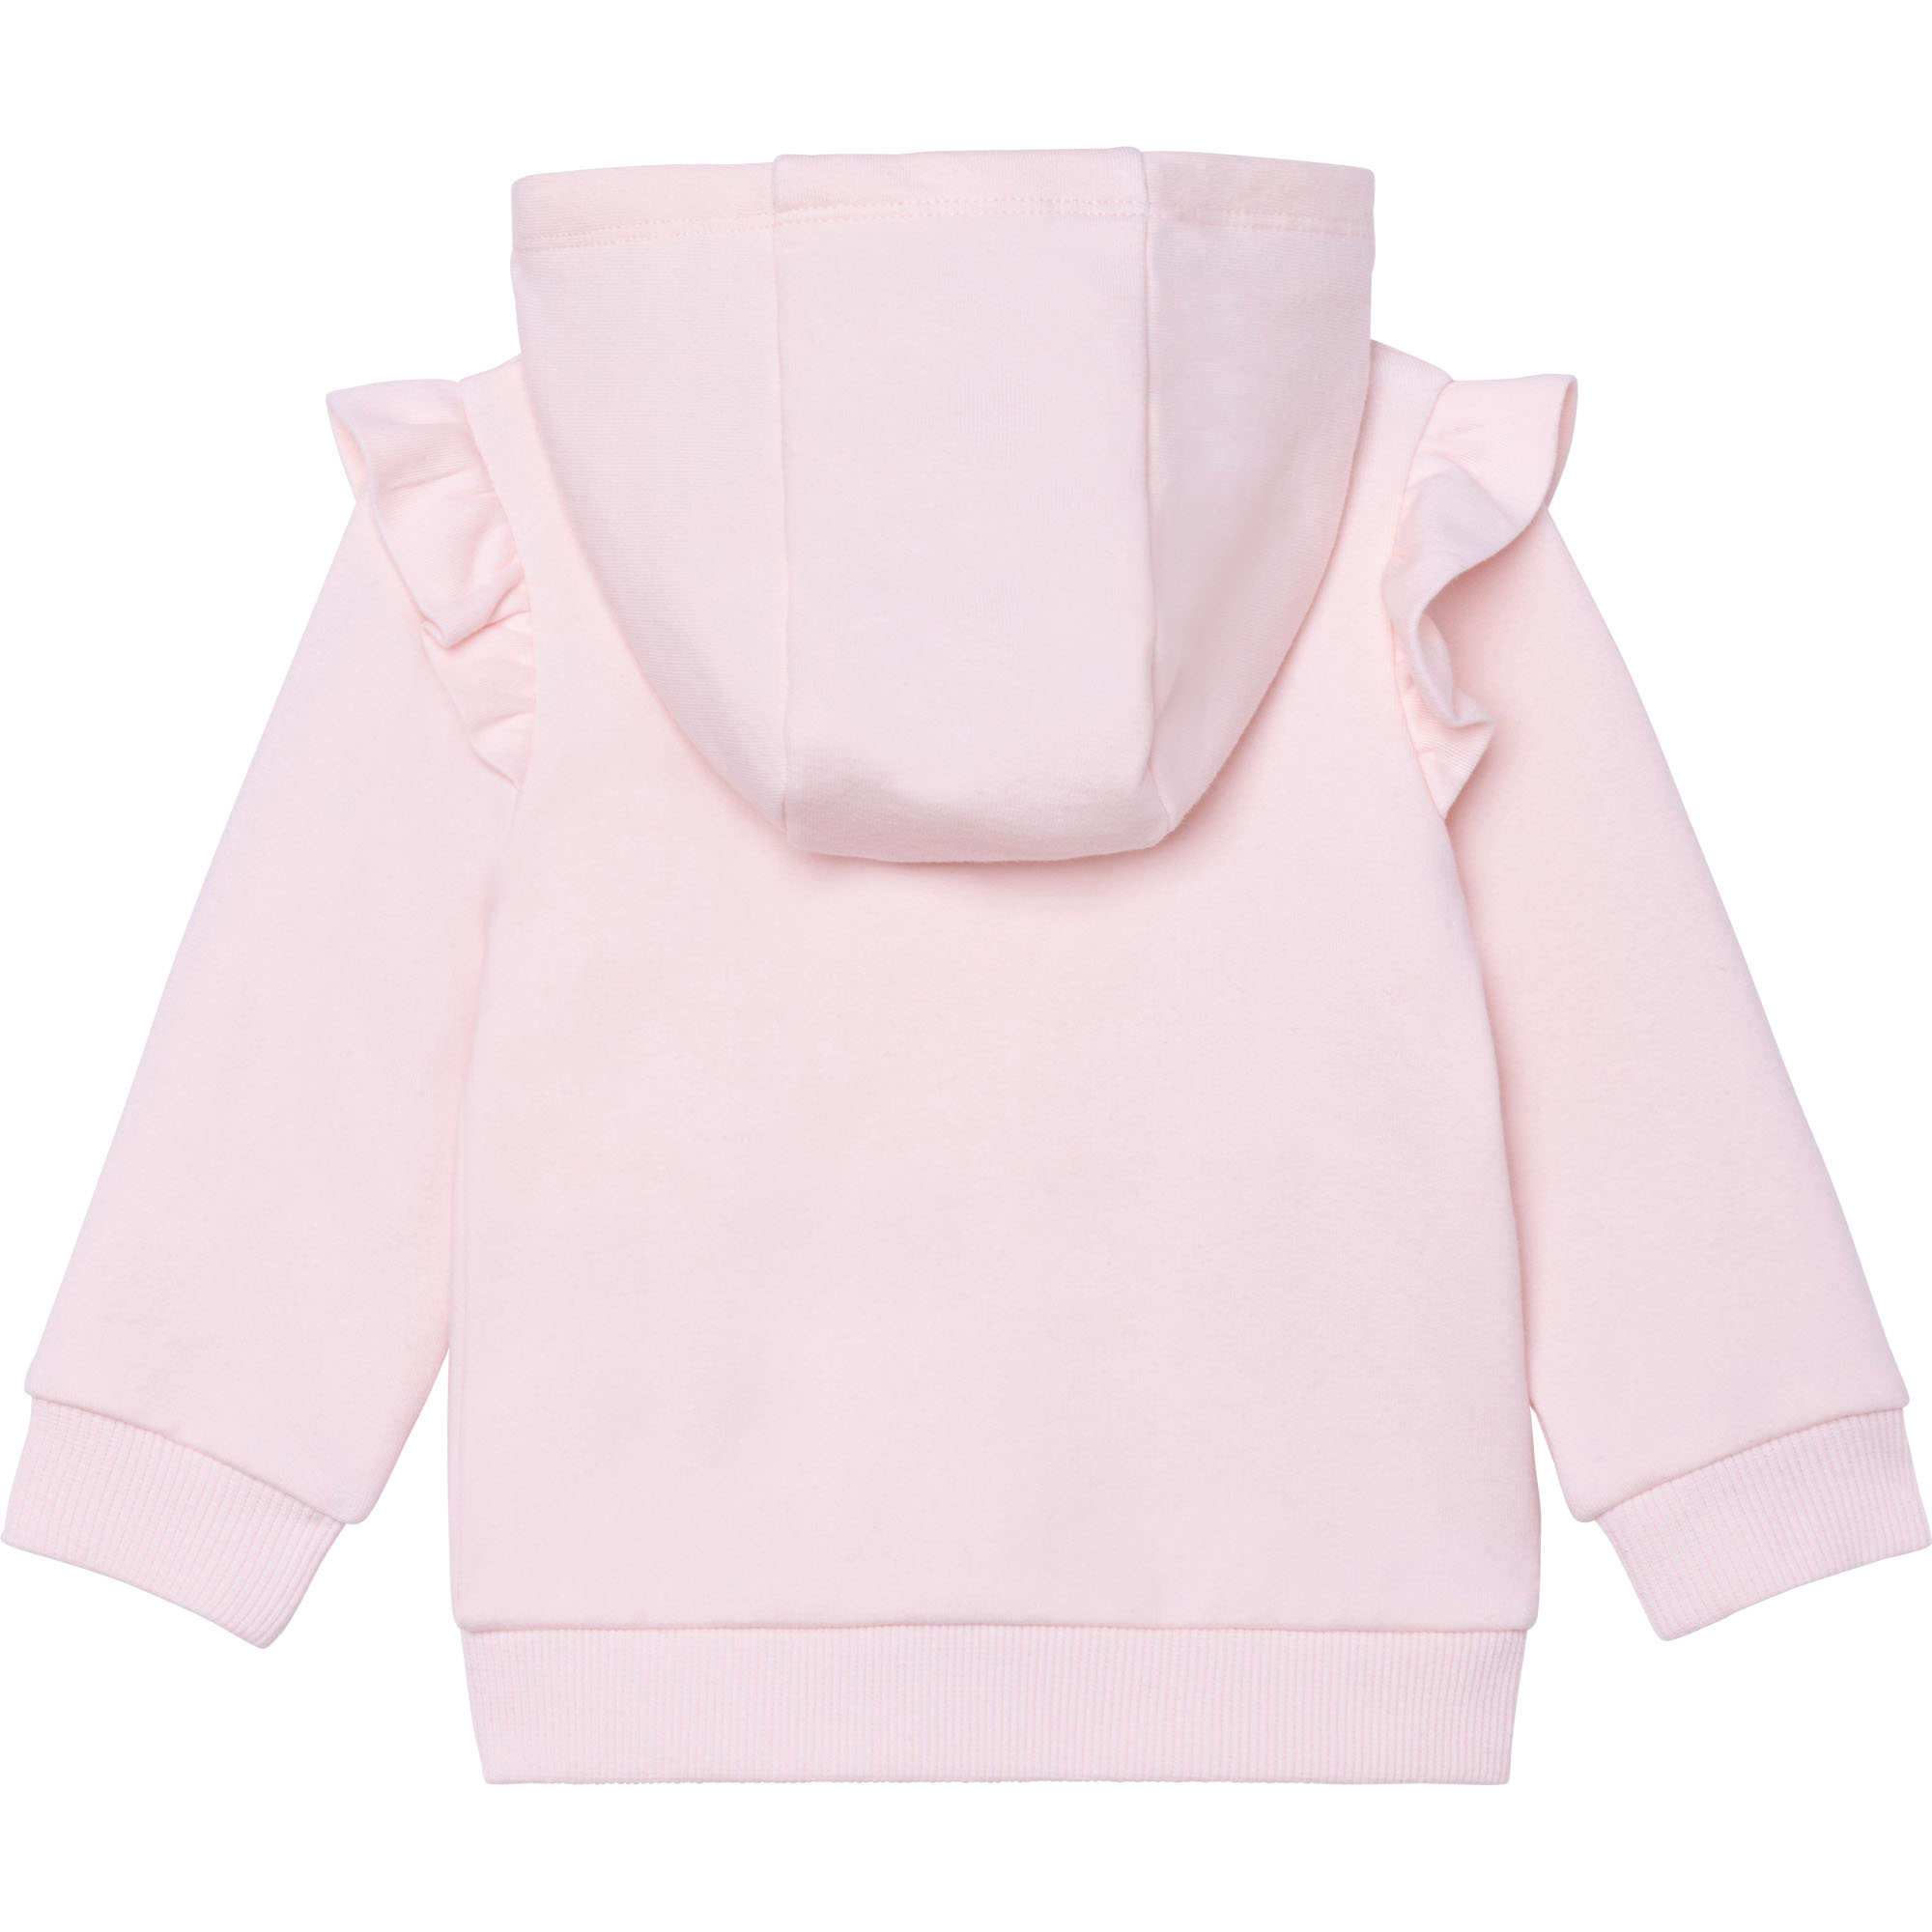 TRACK SUIT CARREMENT BEAU for GIRL